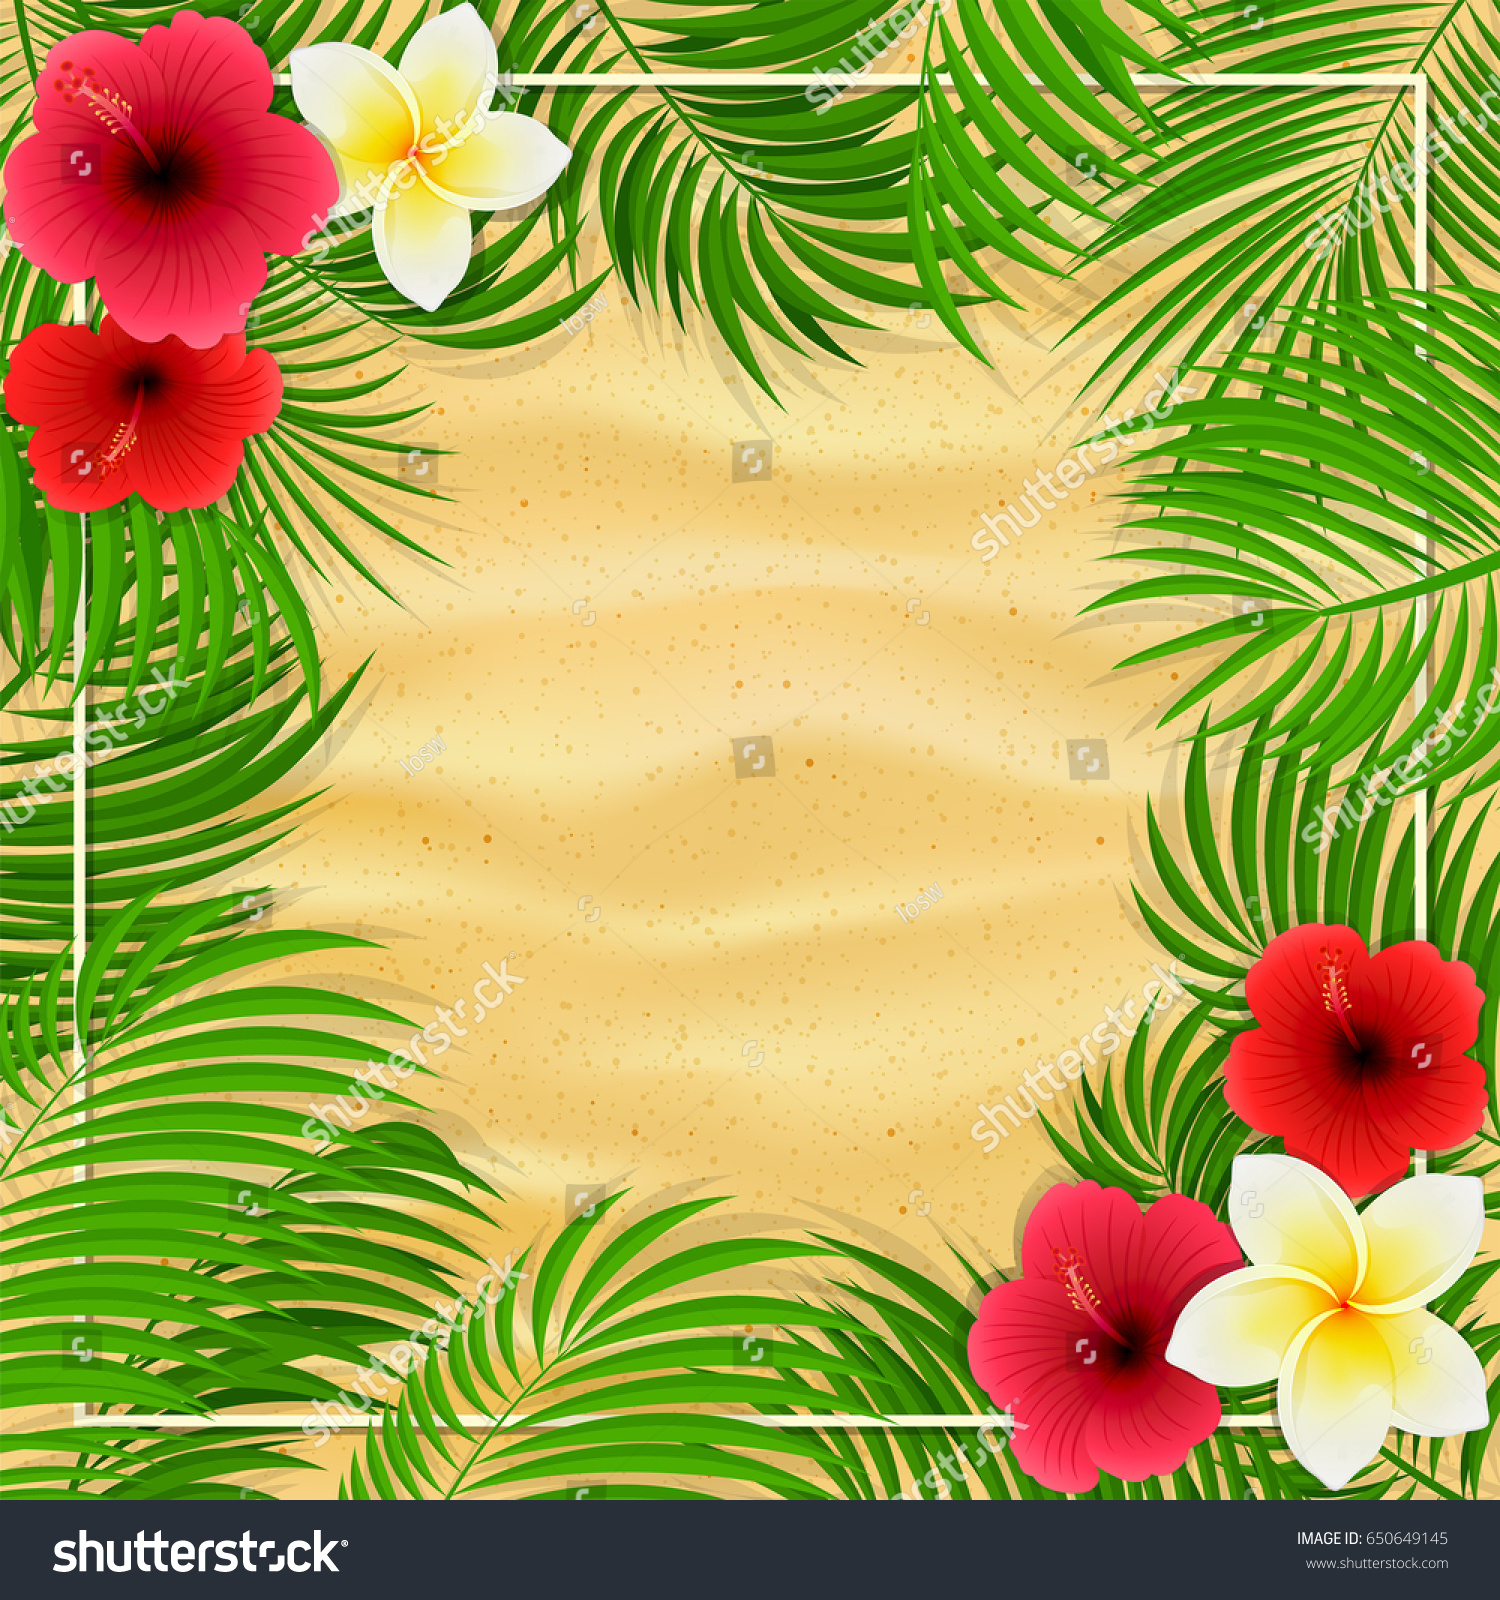 Summer background palms hawaiian flowers frangipani stock vector summer background with palms and hawaiian flowers frangipani hibiscus and palm leaves on sandy izmirmasajfo